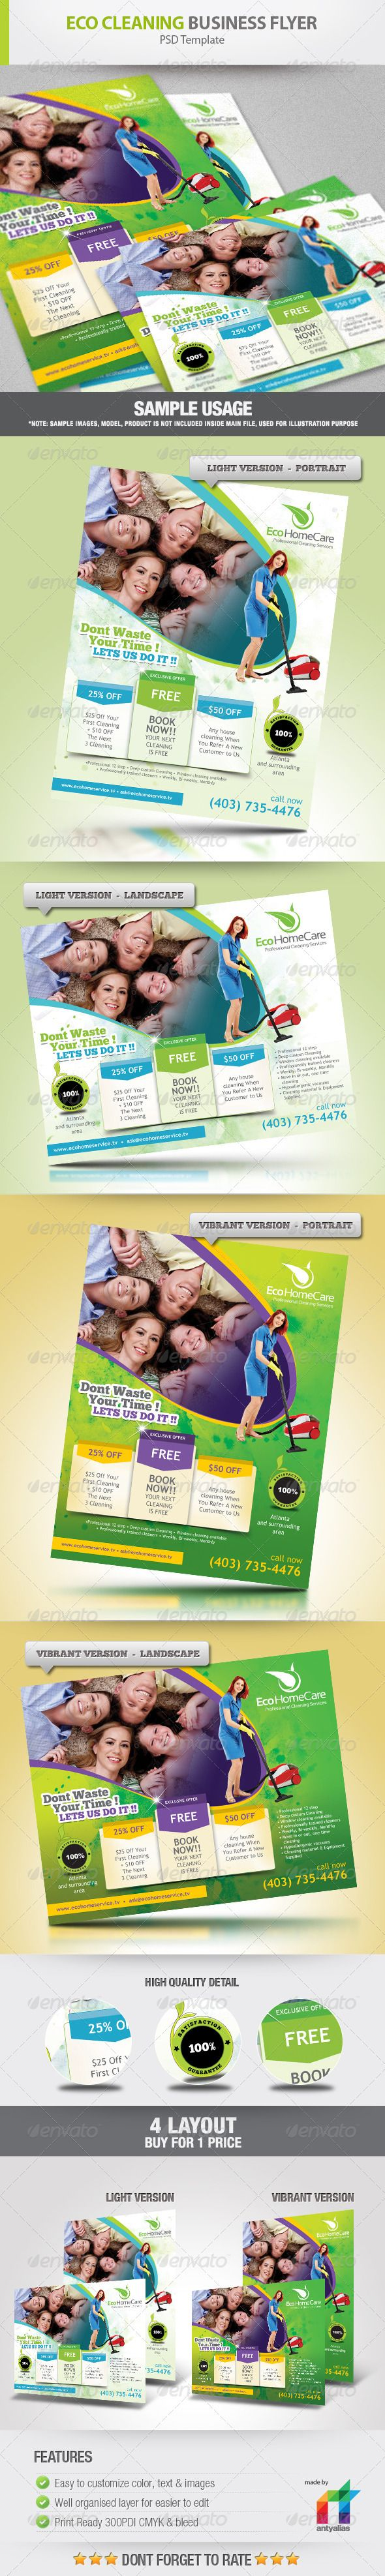 best images about flyers facial massage google eco cleaning service flyer ad